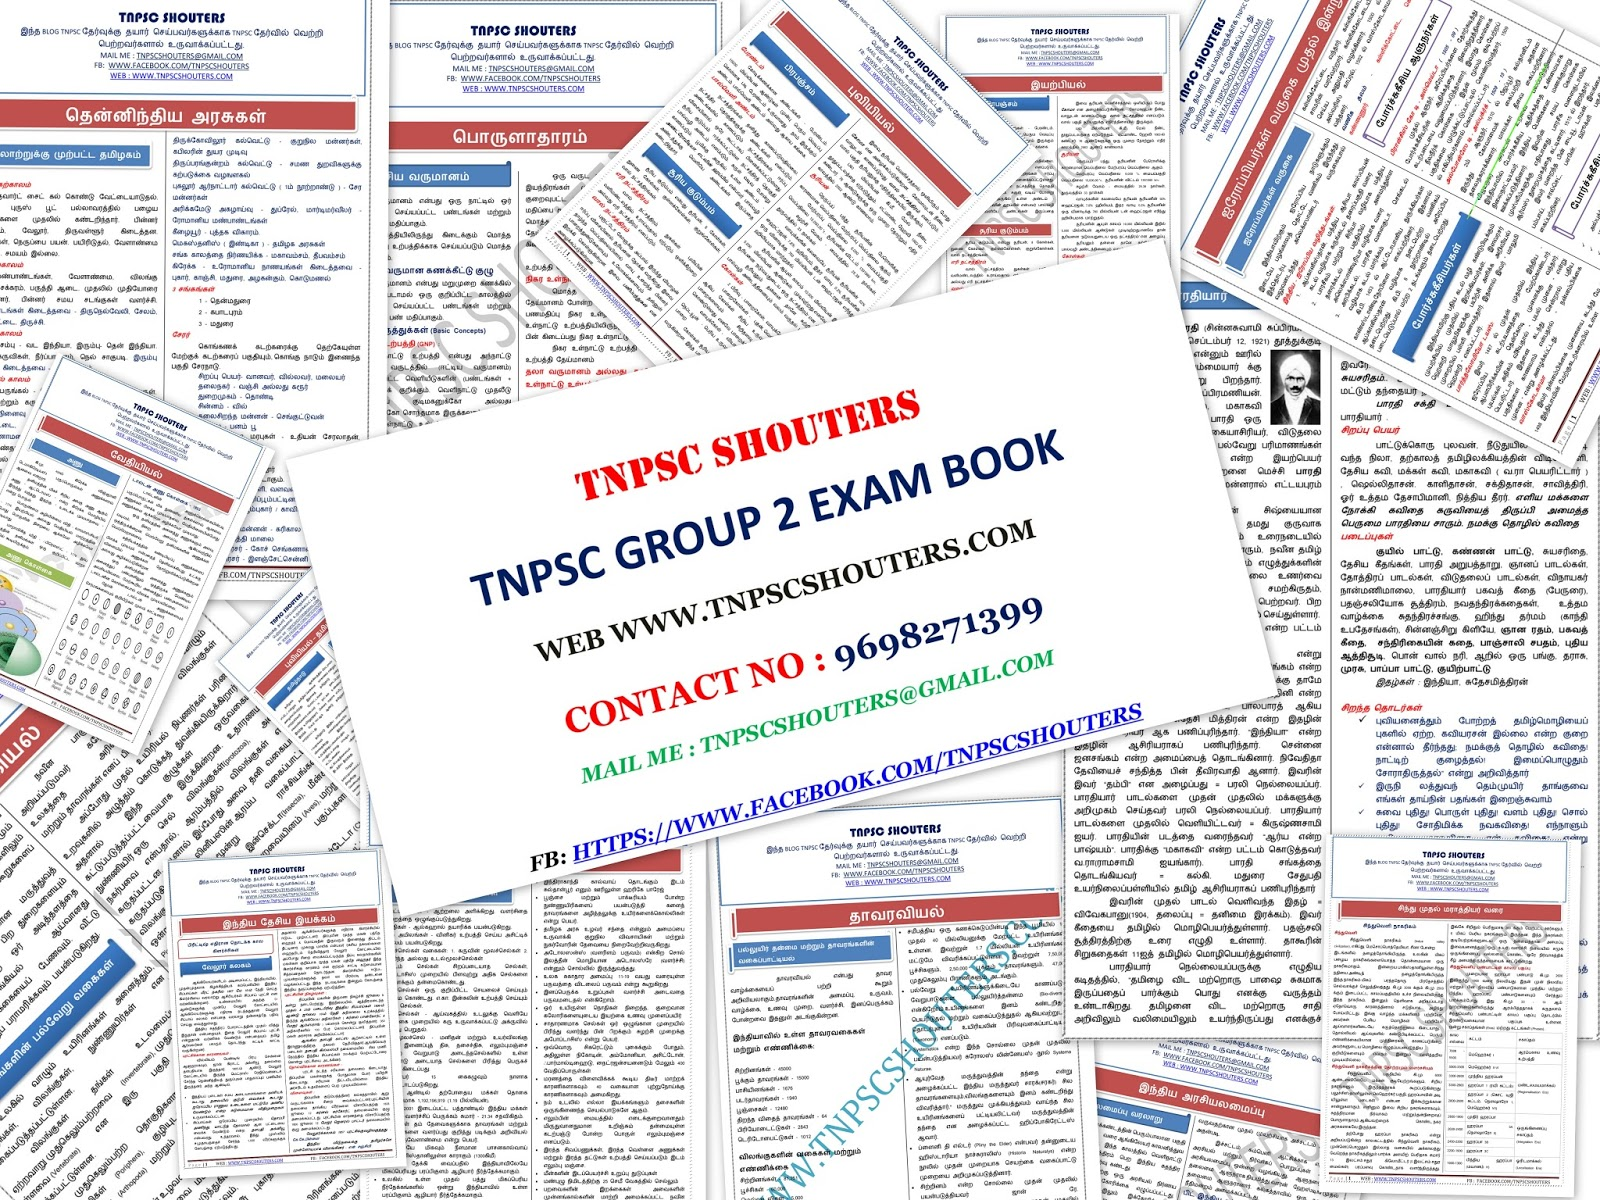 TNPSC GROUP 2